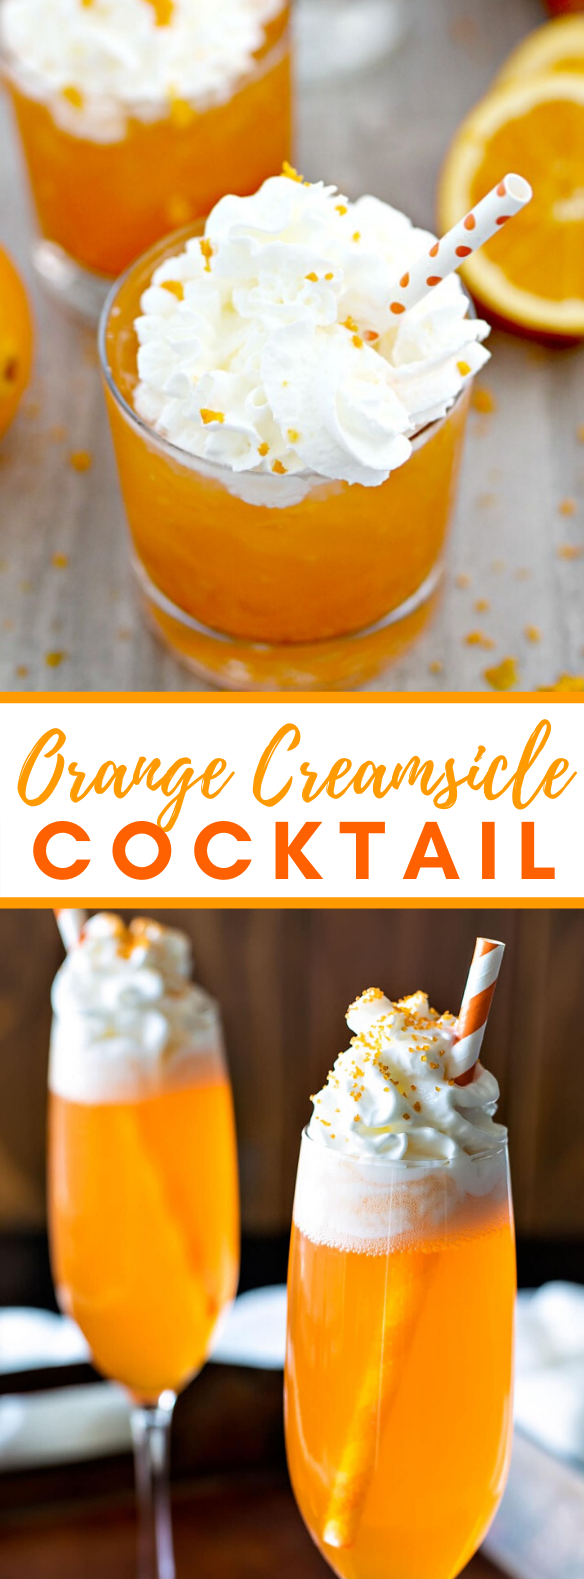 ORANGE CREAMSICLE COCKTAIL #drinks #holidaydrink